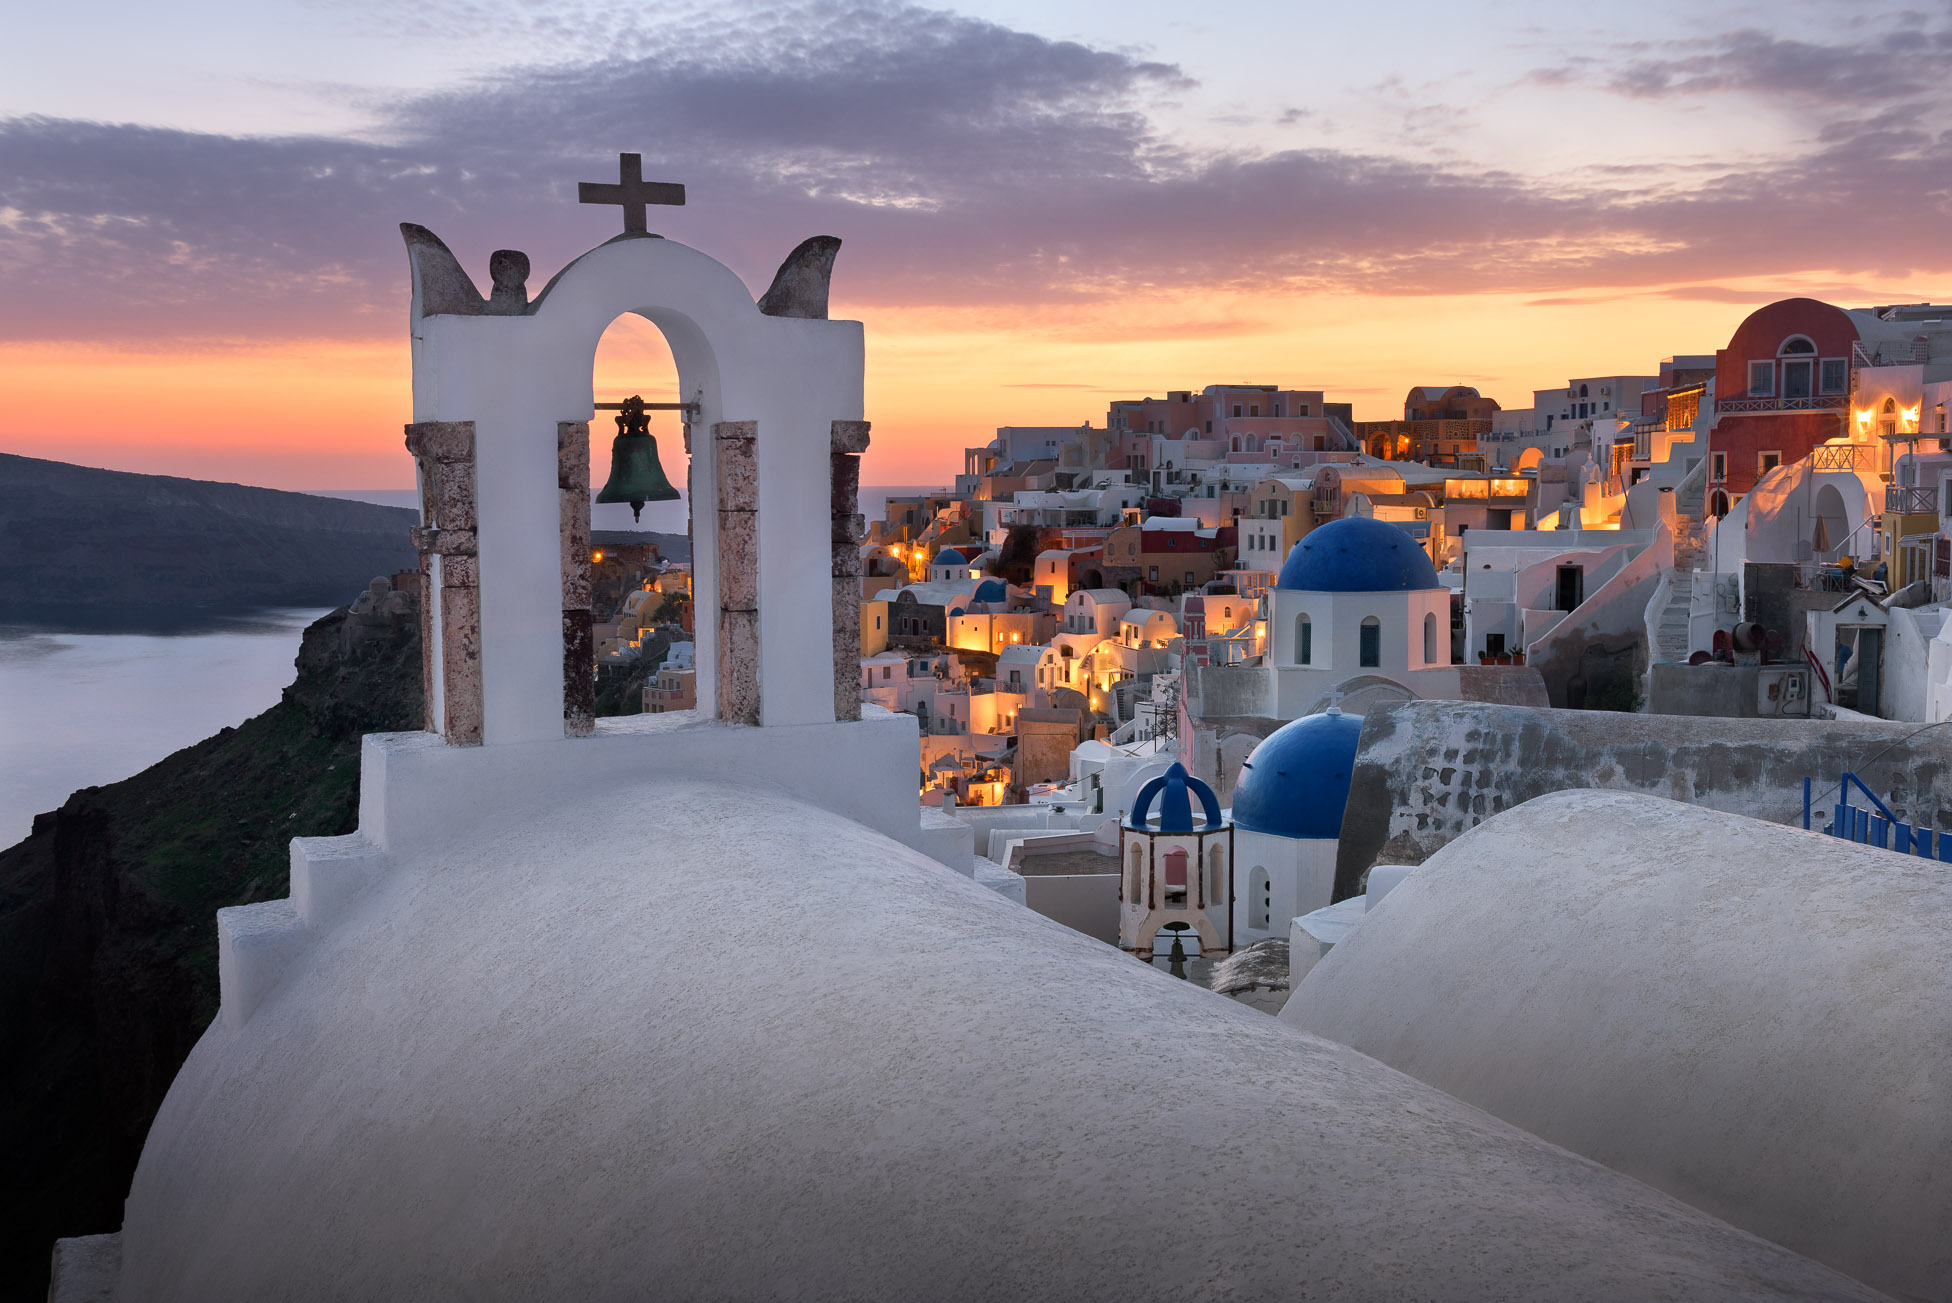 White Churches of Oia Village at Sunset, Santorini, Greece